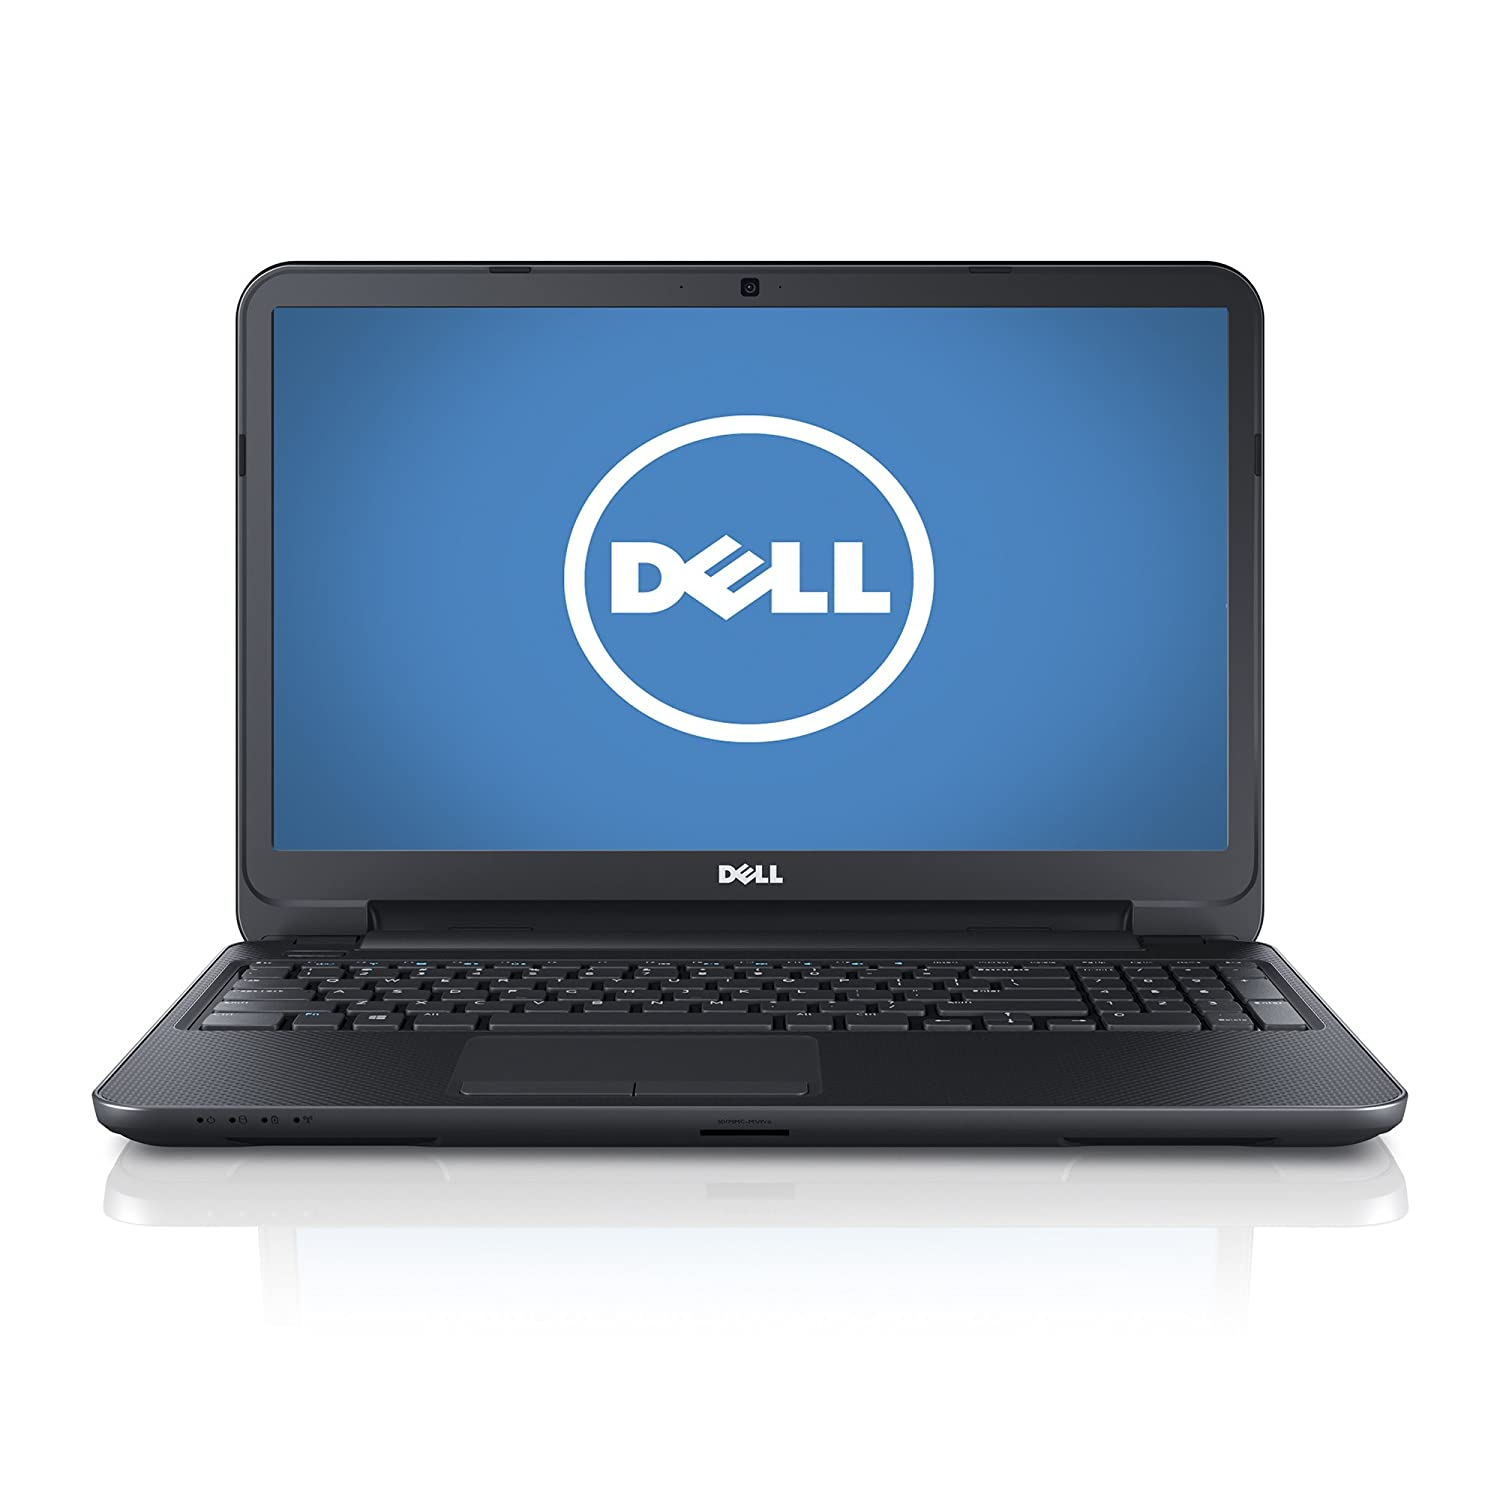 Dell Inspiron i15RV-954BLK 15.6-Inch Laptop